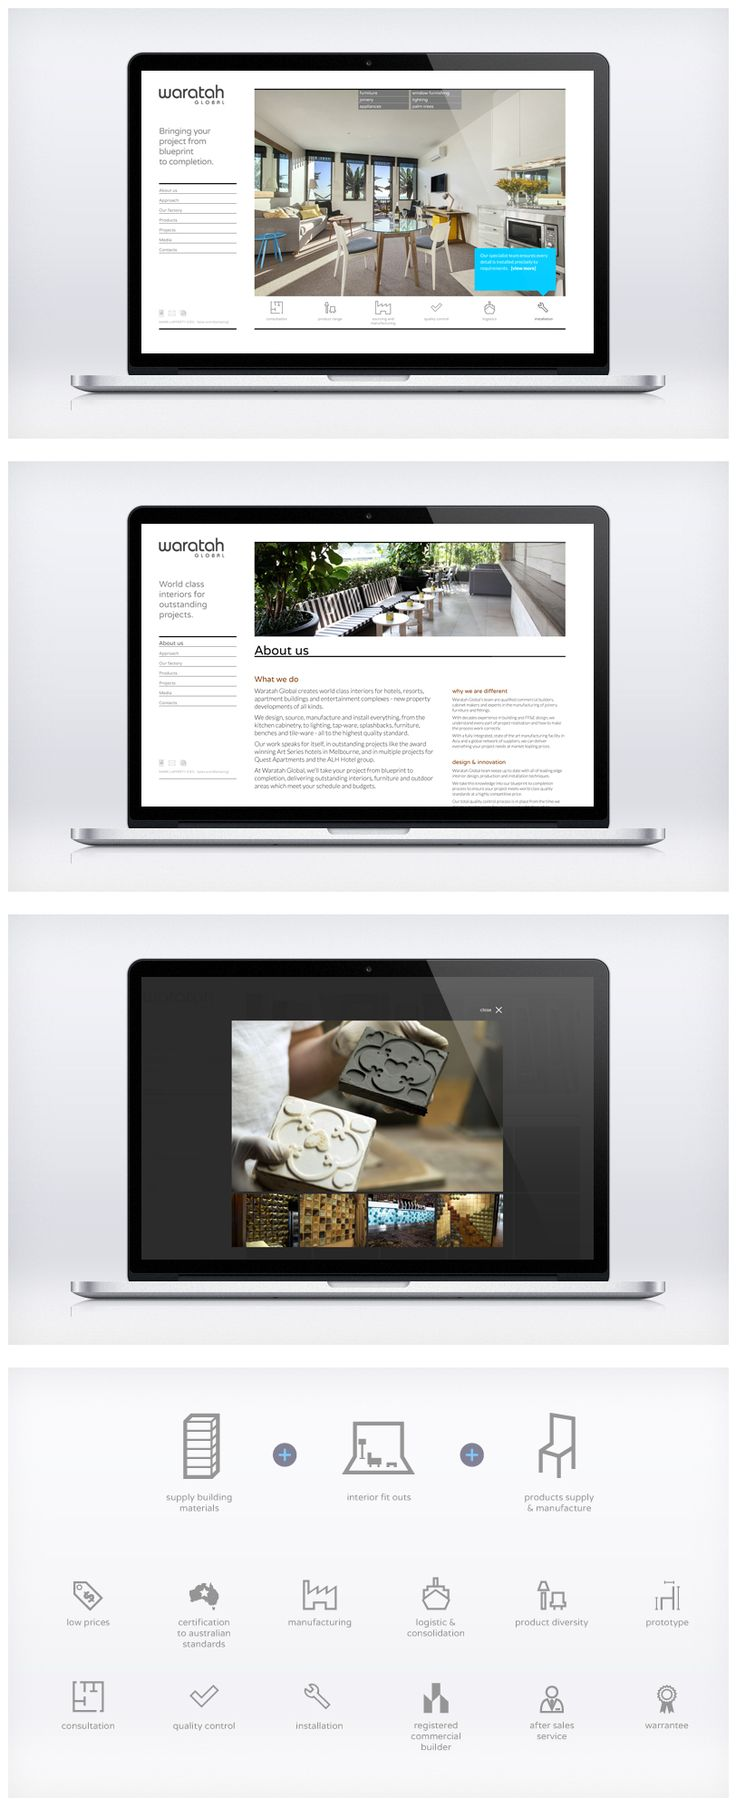 Waratah Global's Asian-built website wasn't cutting it in the hotels and resort interiors market. They needed a new digital look to project their build quality, range of services and decades' of expertise. Working closely with Waratah Global's executive team, Liquid devised a new digital strategy with engaging and informative content and responsive design to optimise user experience across all online channels.